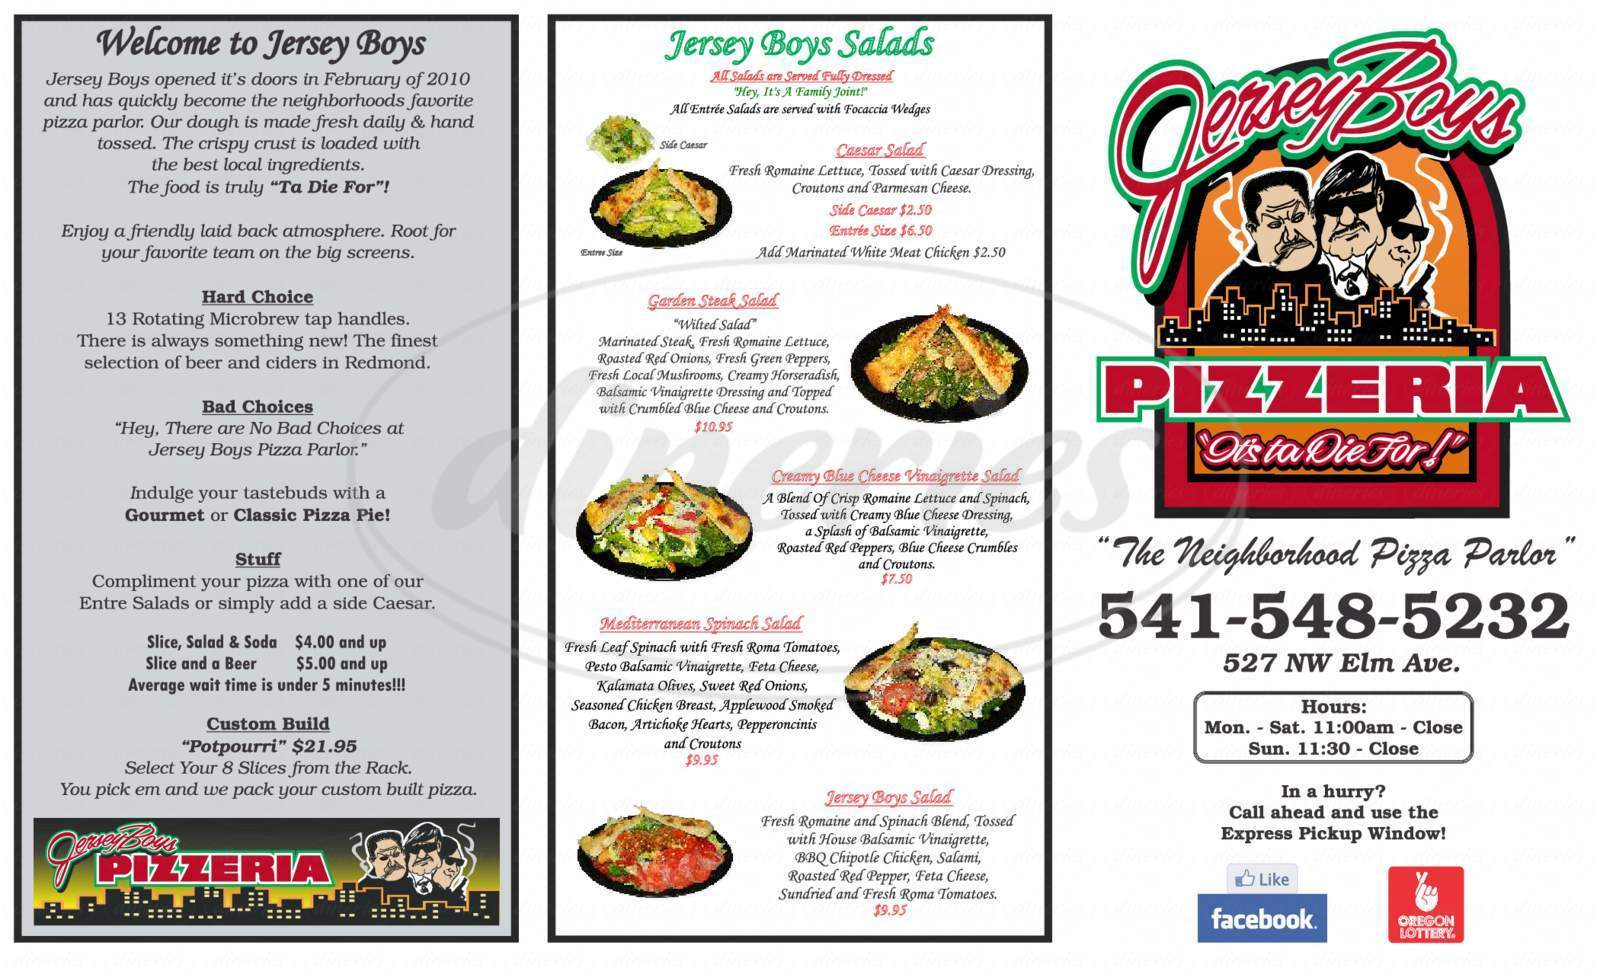 menu for Jersey Boys Pizzeria